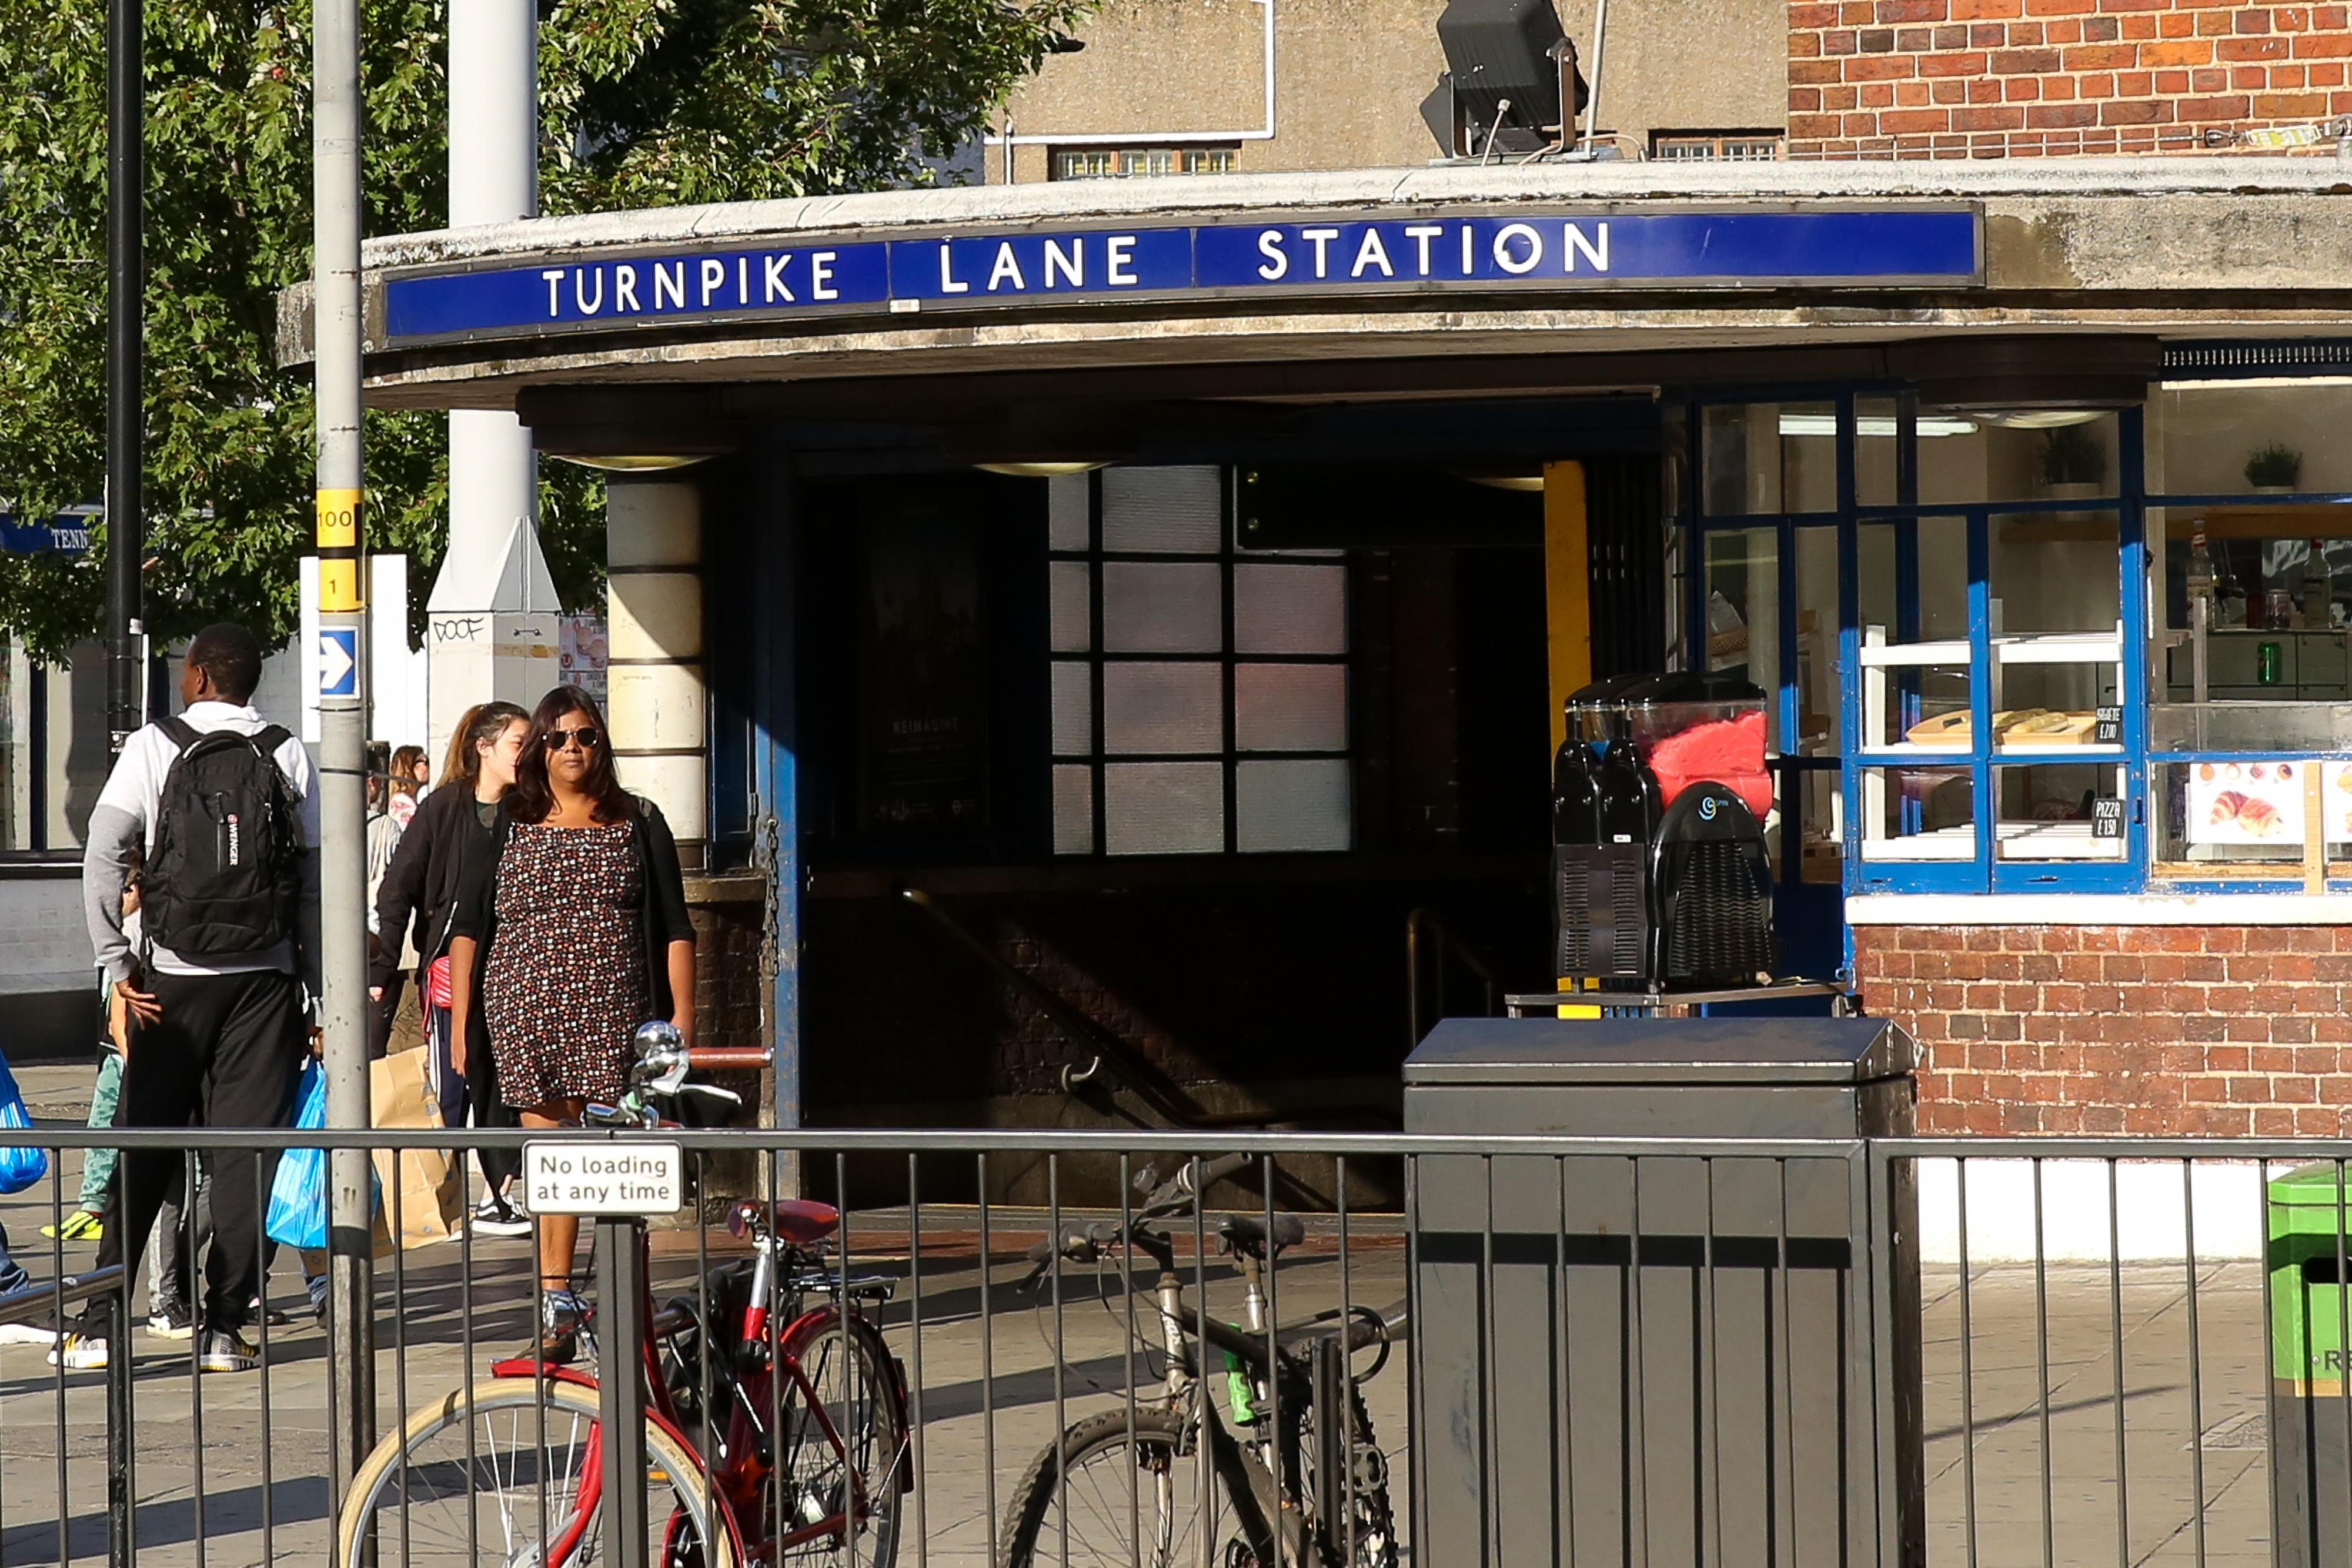 Turnpike Lane shooting: Boy, 17, in life-threatening condition after being shot outside tube station